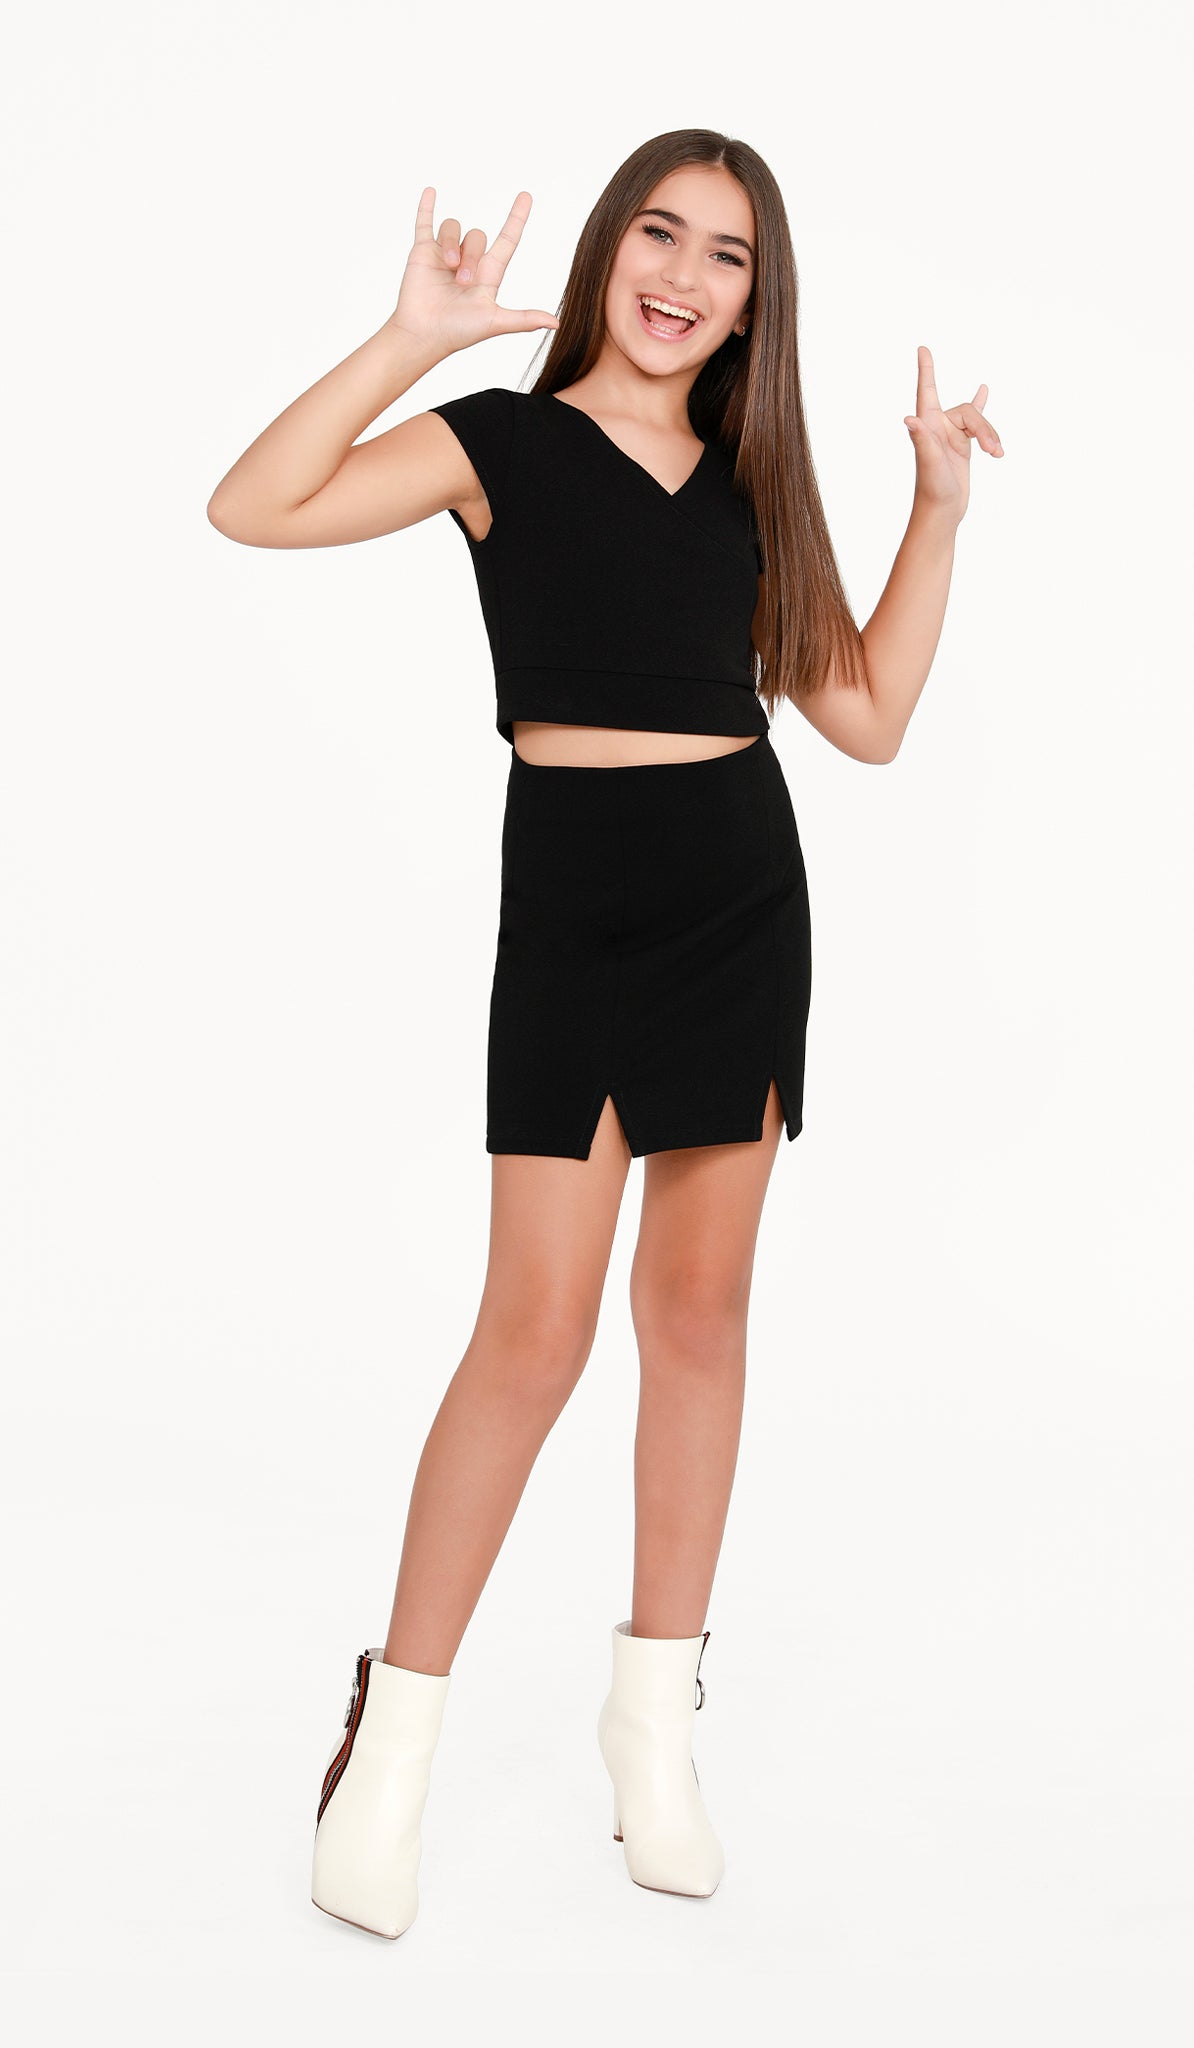 The Sally Miller Double Slit Skirt - Black stretch knit straight skirt with double slits and side zipper